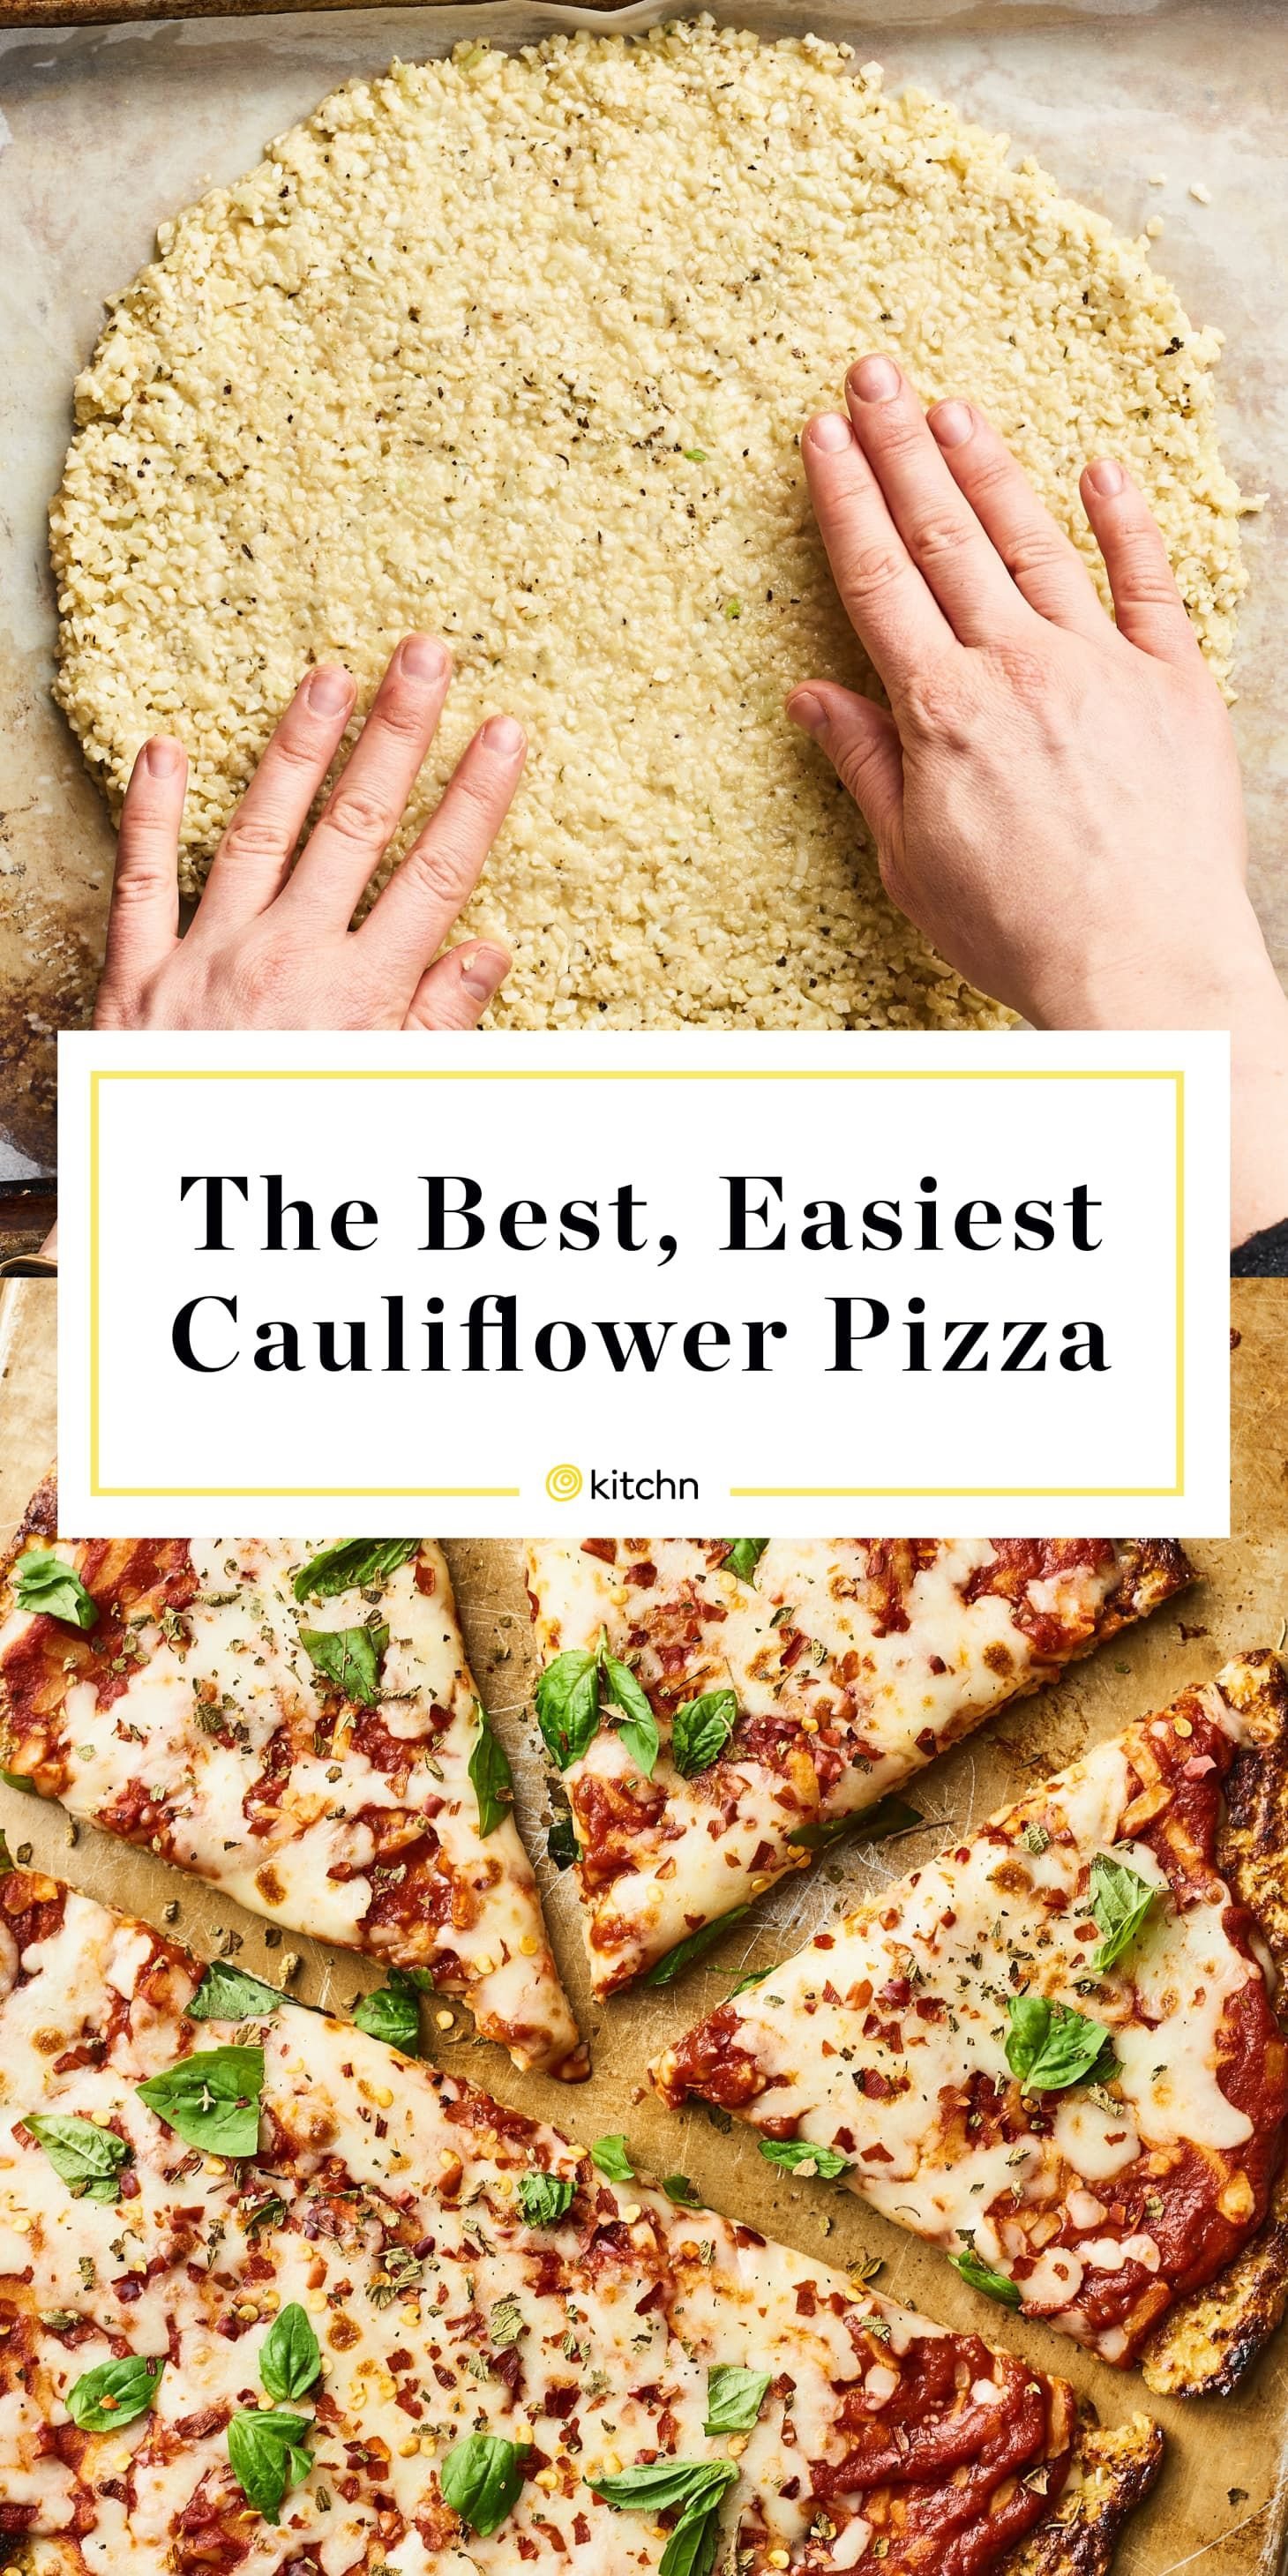 Photo of Cauliflower Pizza